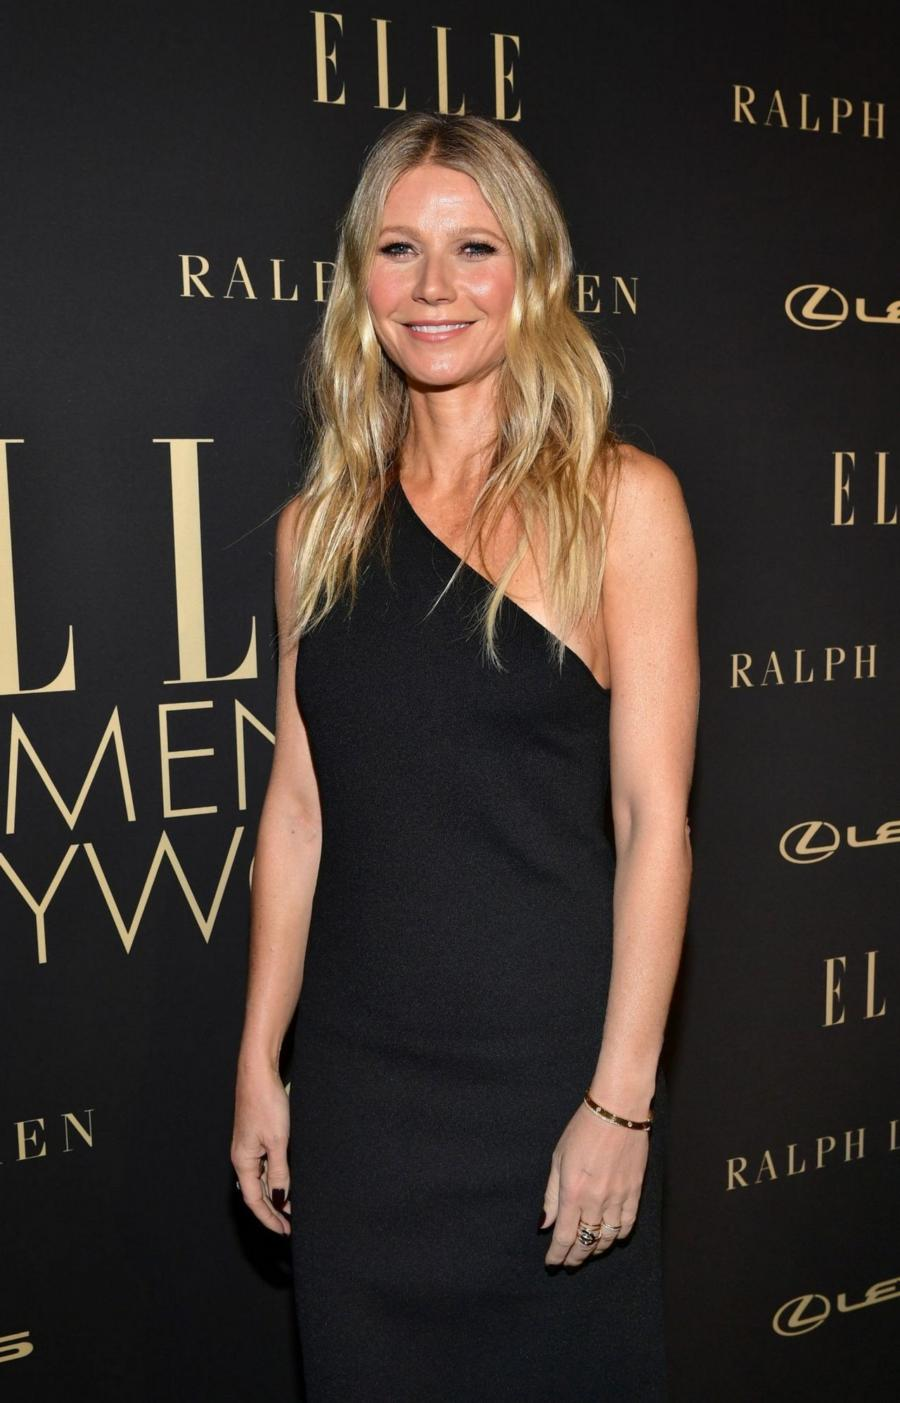 Gwyneth Paltrow at ELLE's 2019 Women In Hollywood Event